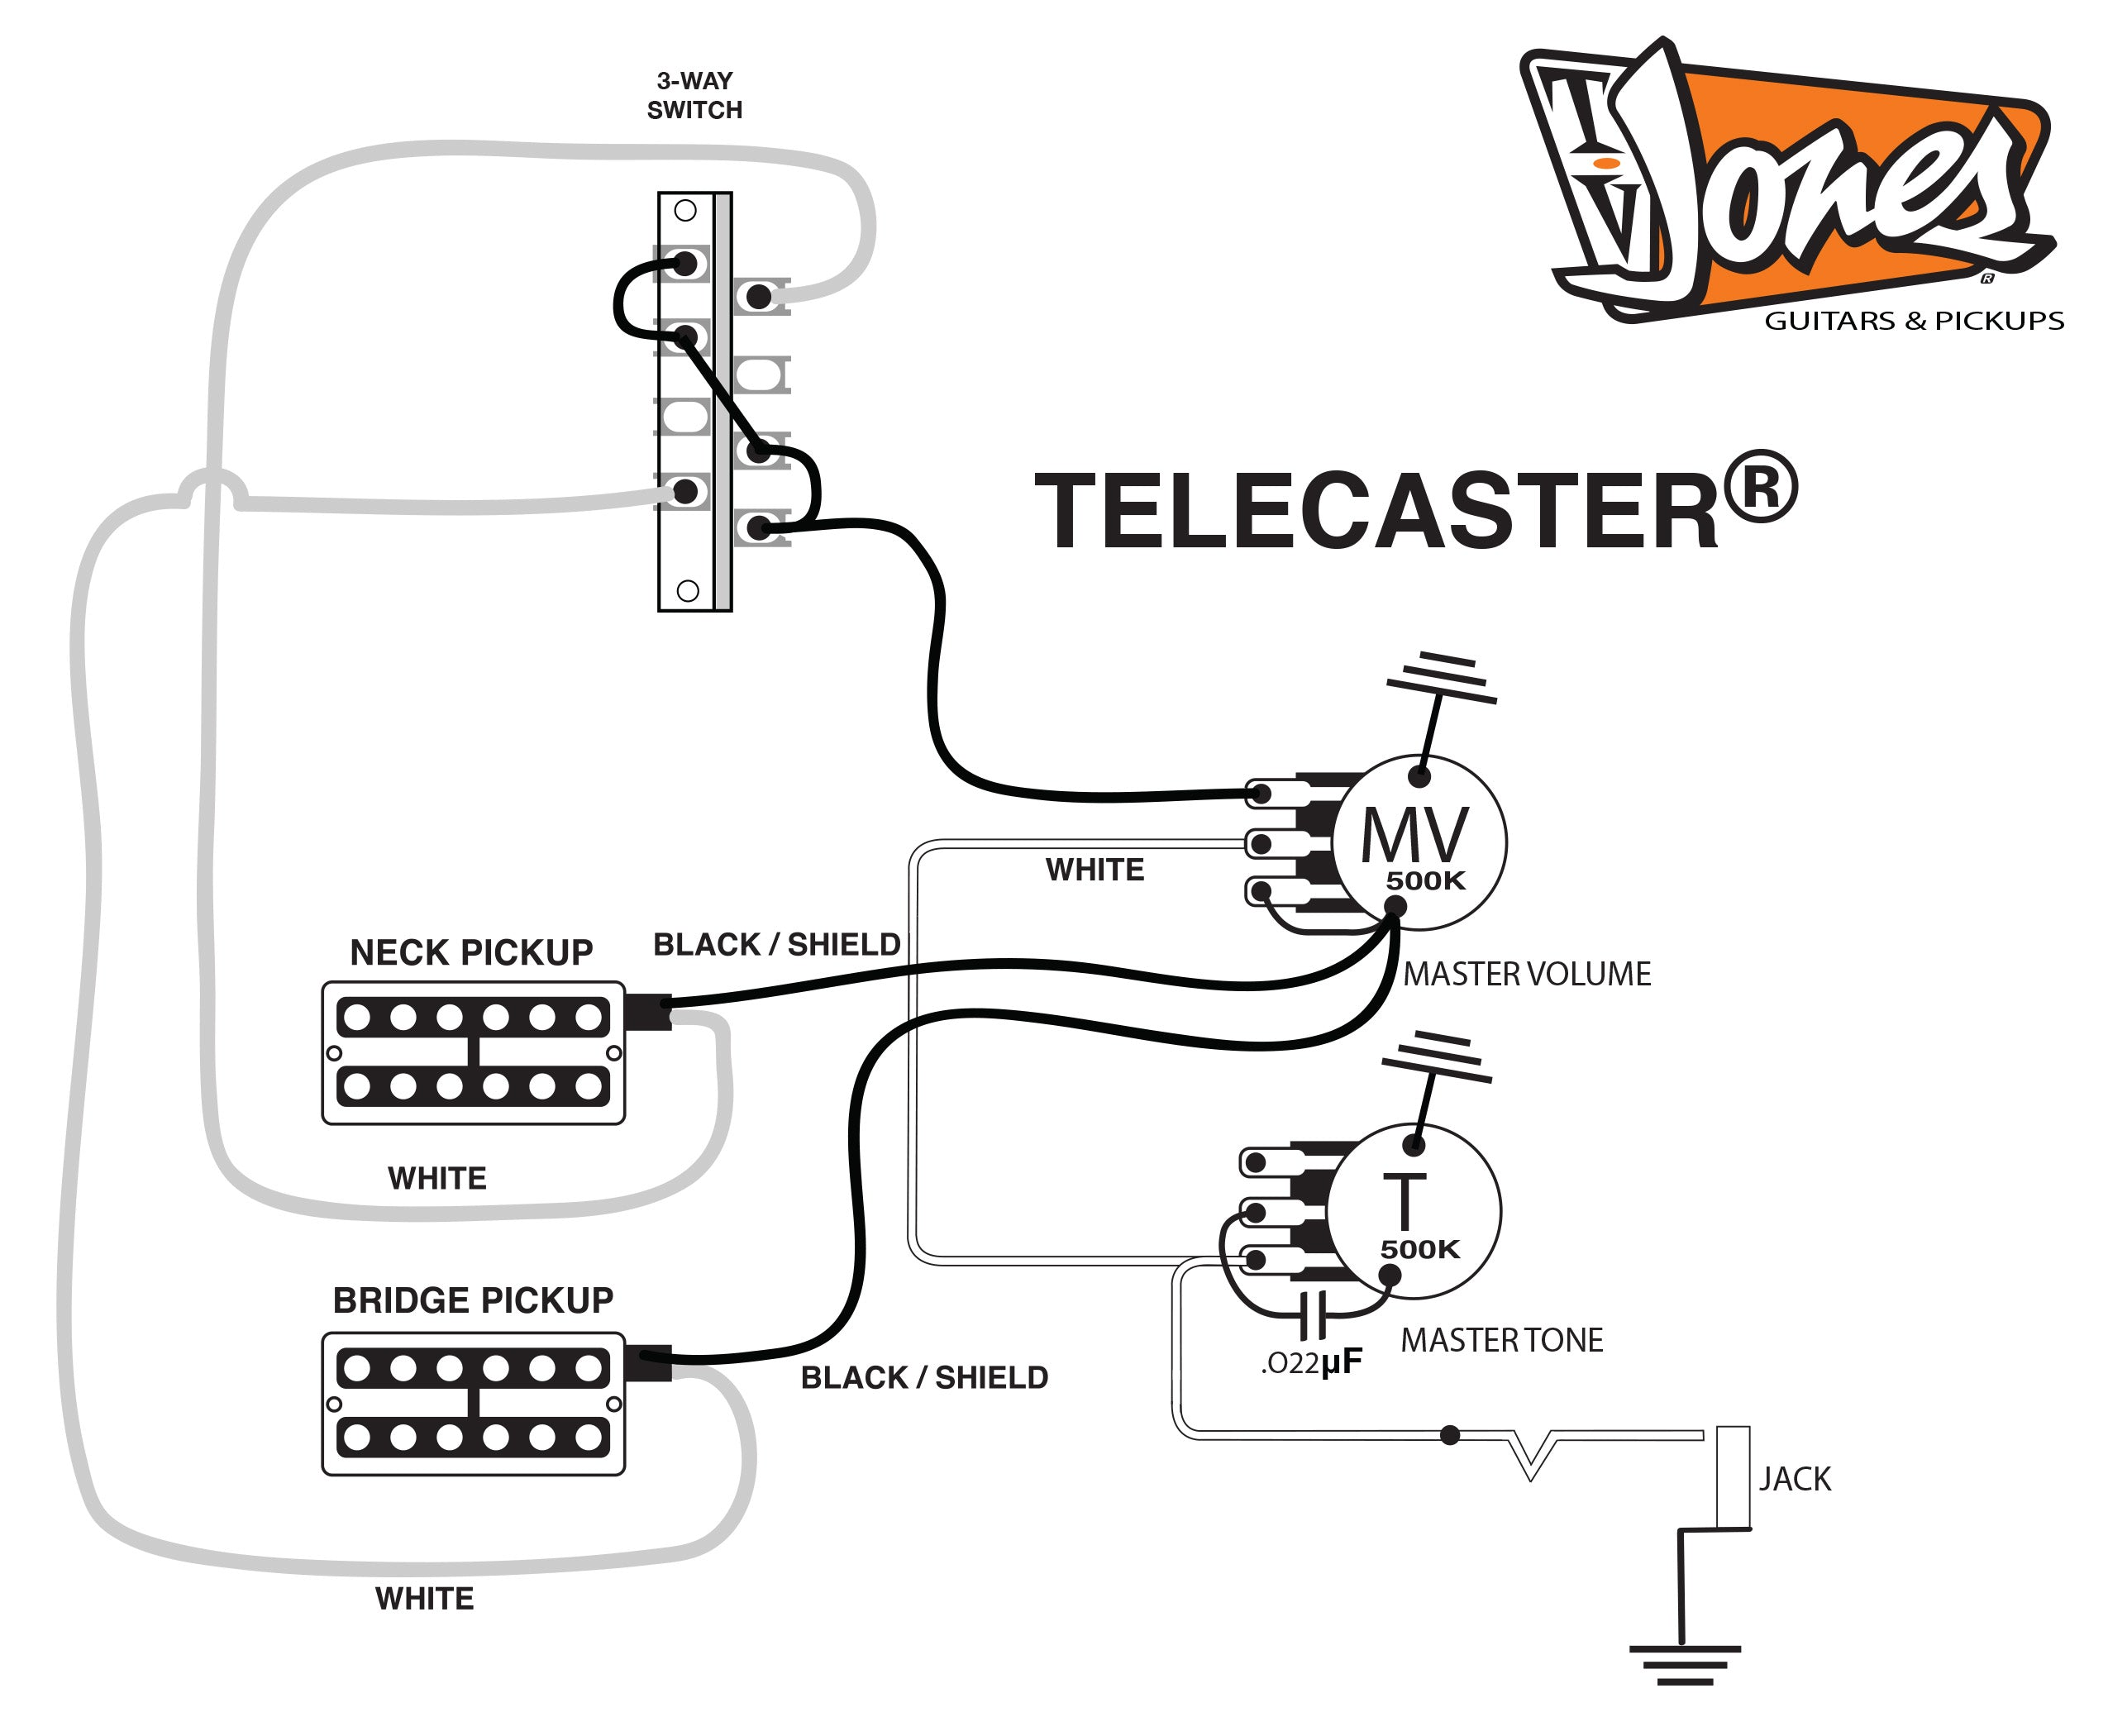 tv jones product dimensions rh tvjones com tv jones telecaster wiring  diagram John Mayer Strat Wiring